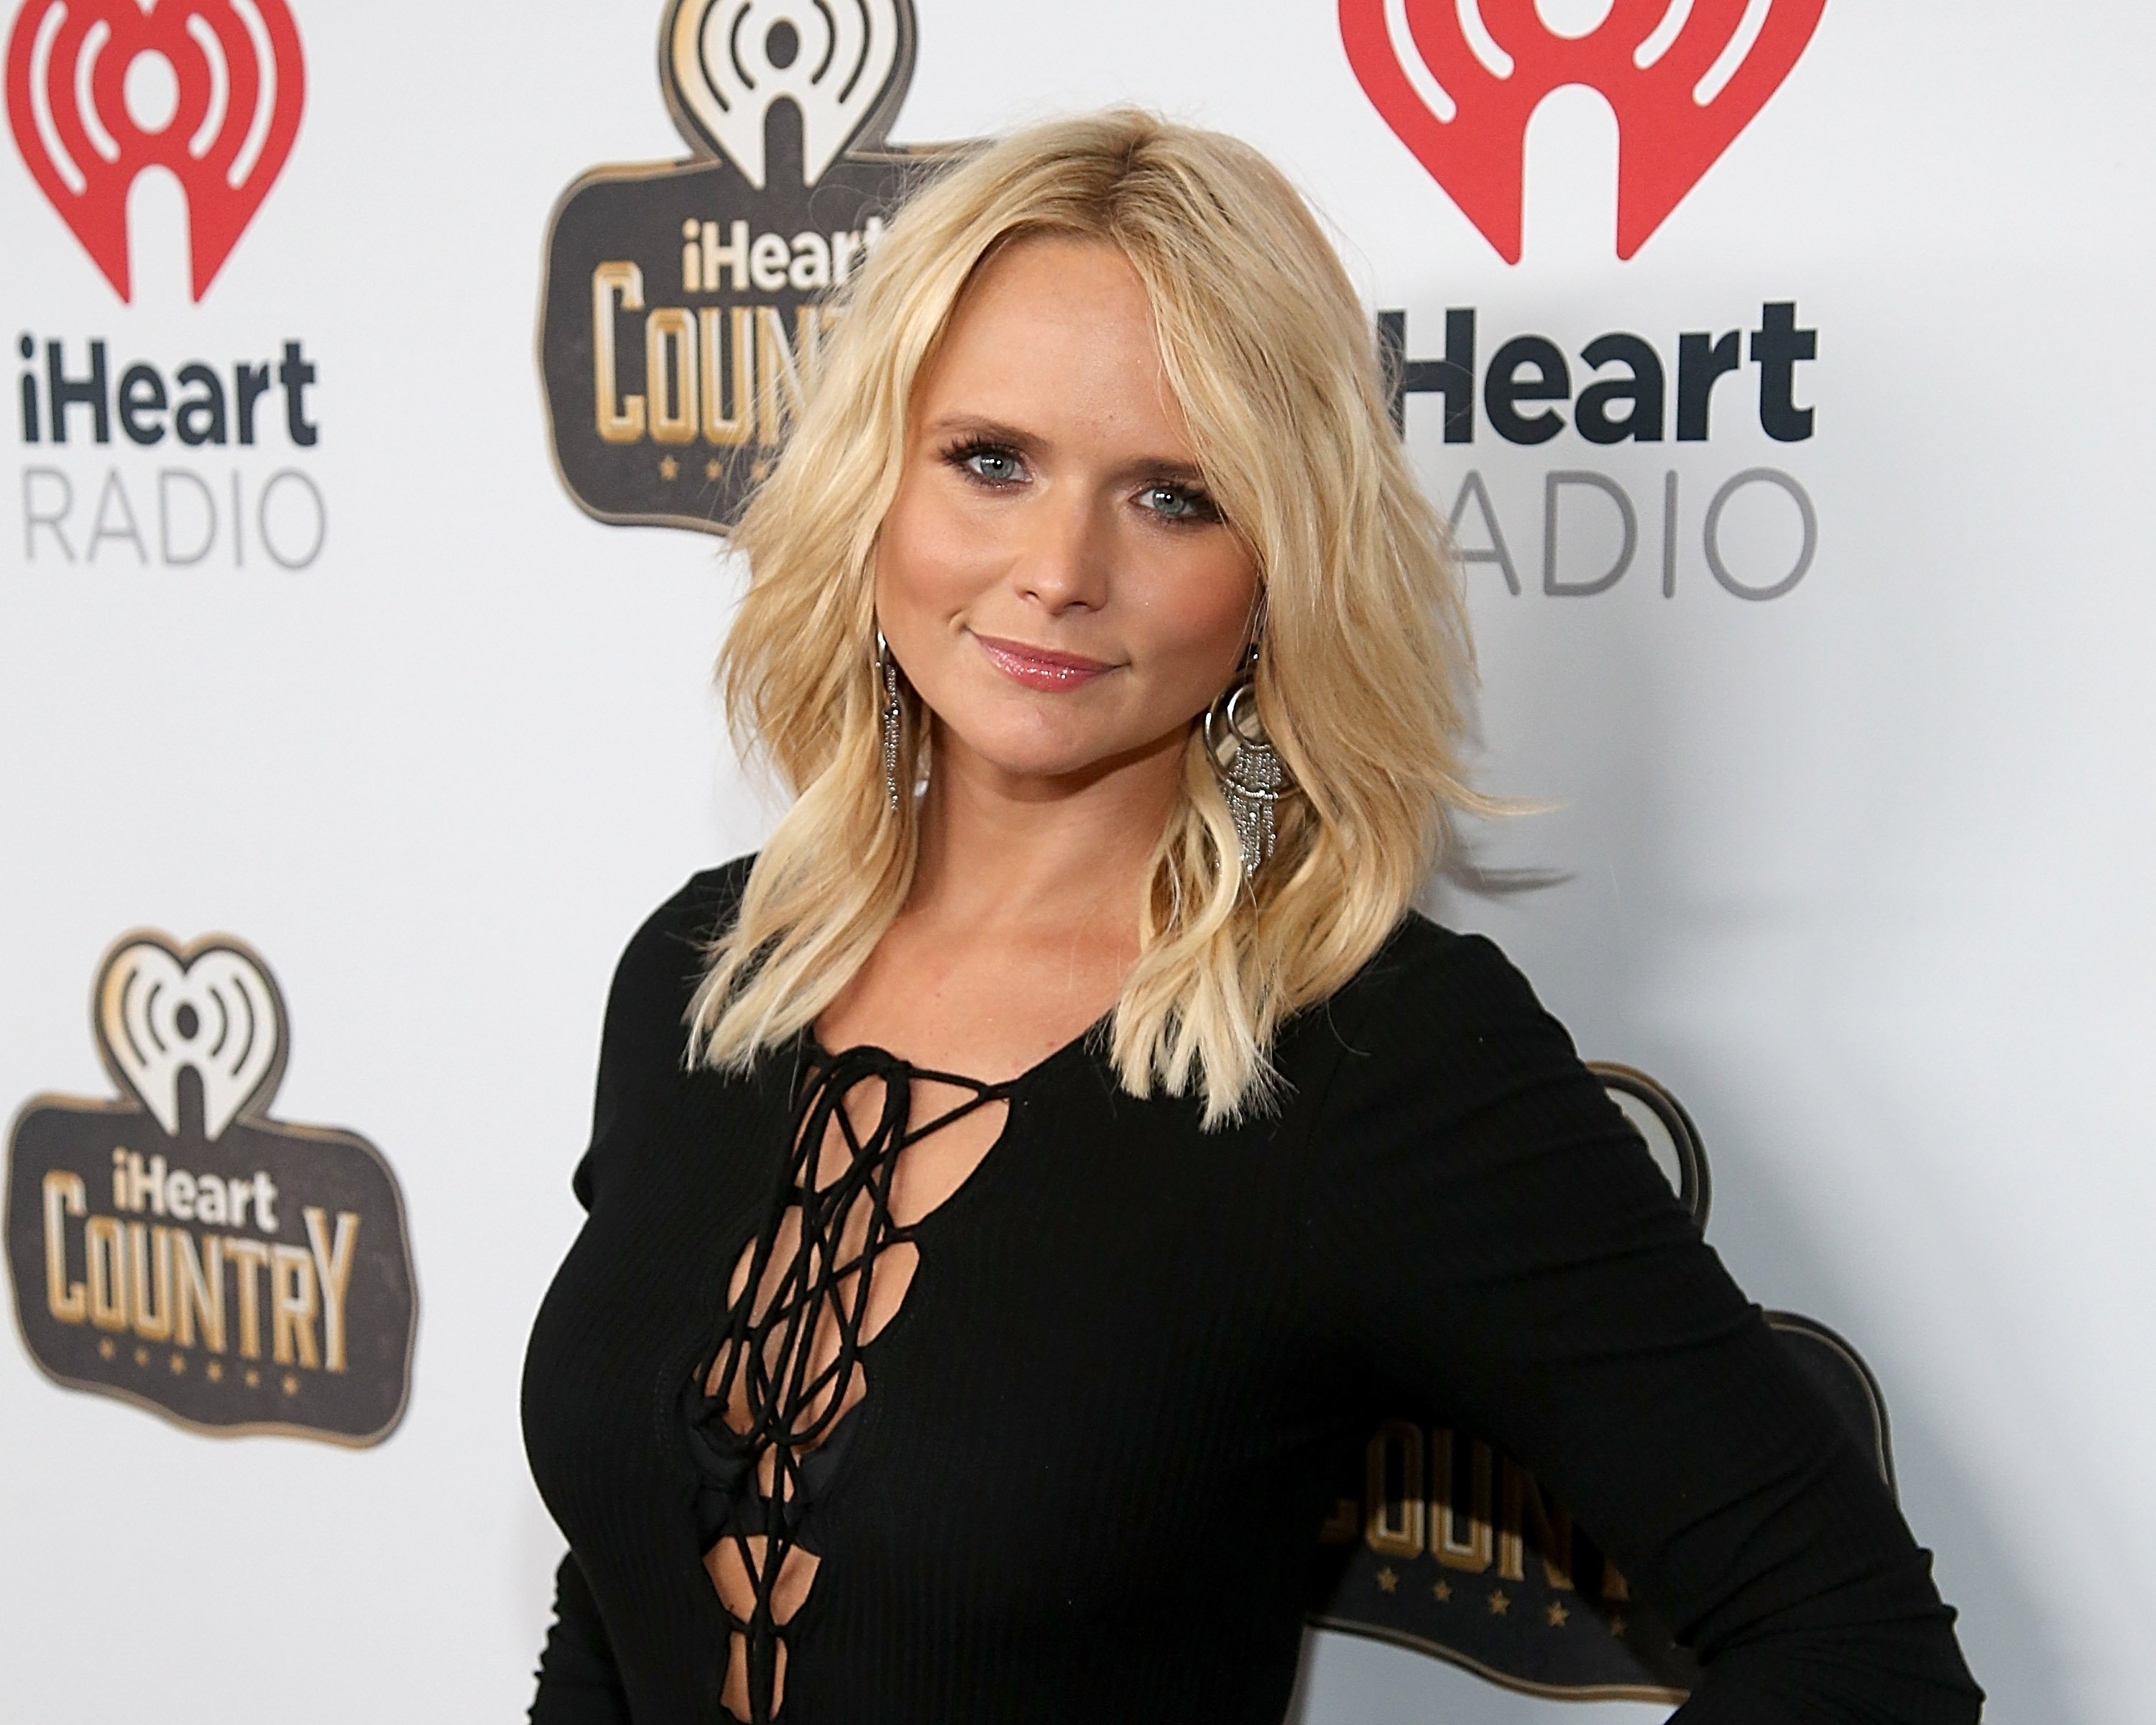 Miranda Lambert attends the 2016 iHeartCountry Festival at The Frank Erwin Center on April 30, 2016 | Photo: GettyImages